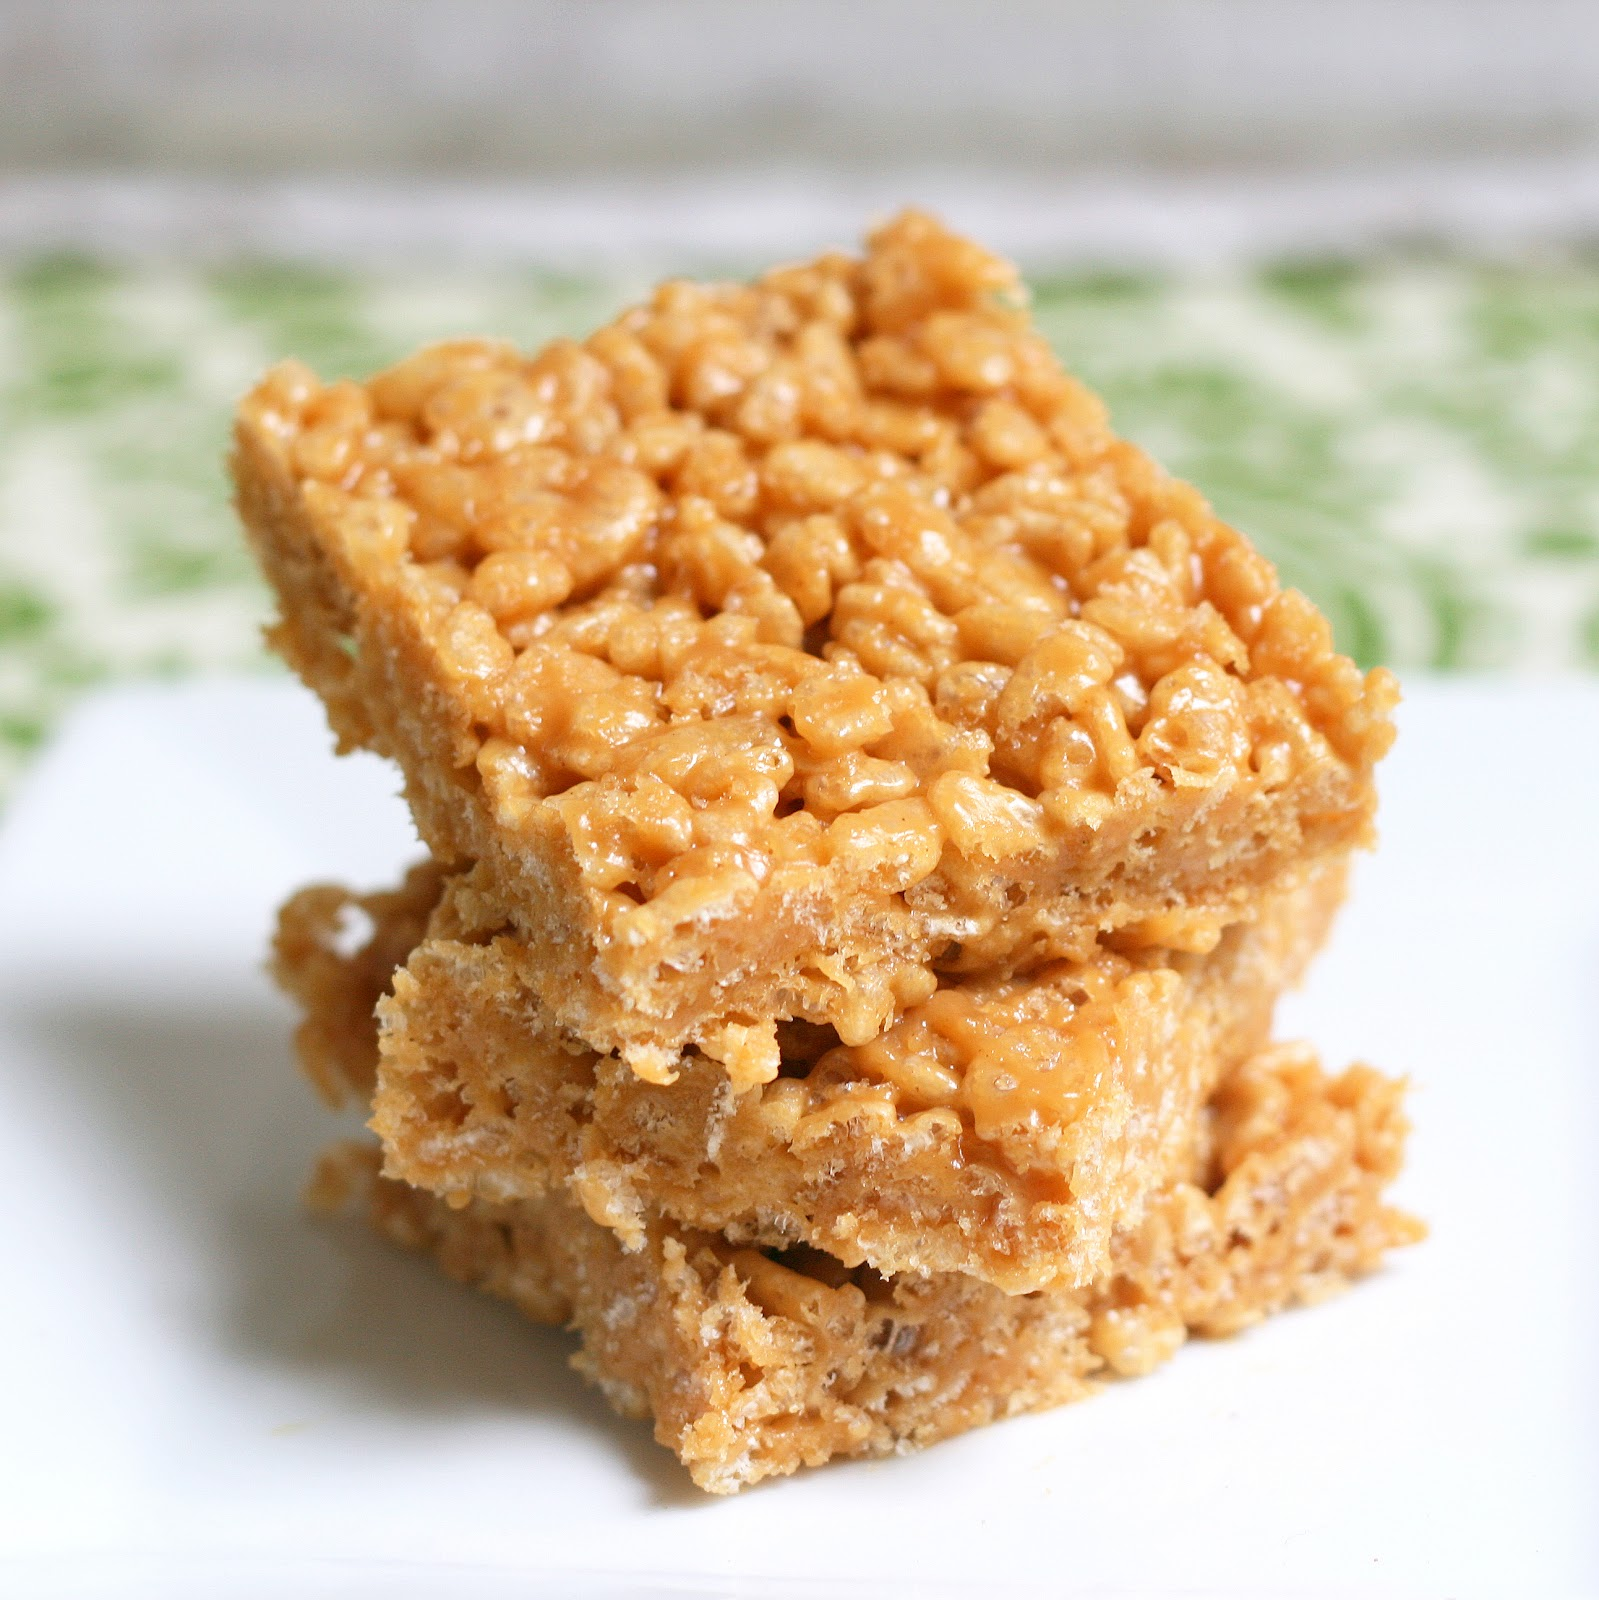 Mix It Up: Peanut Butter Rice Crispy Treats